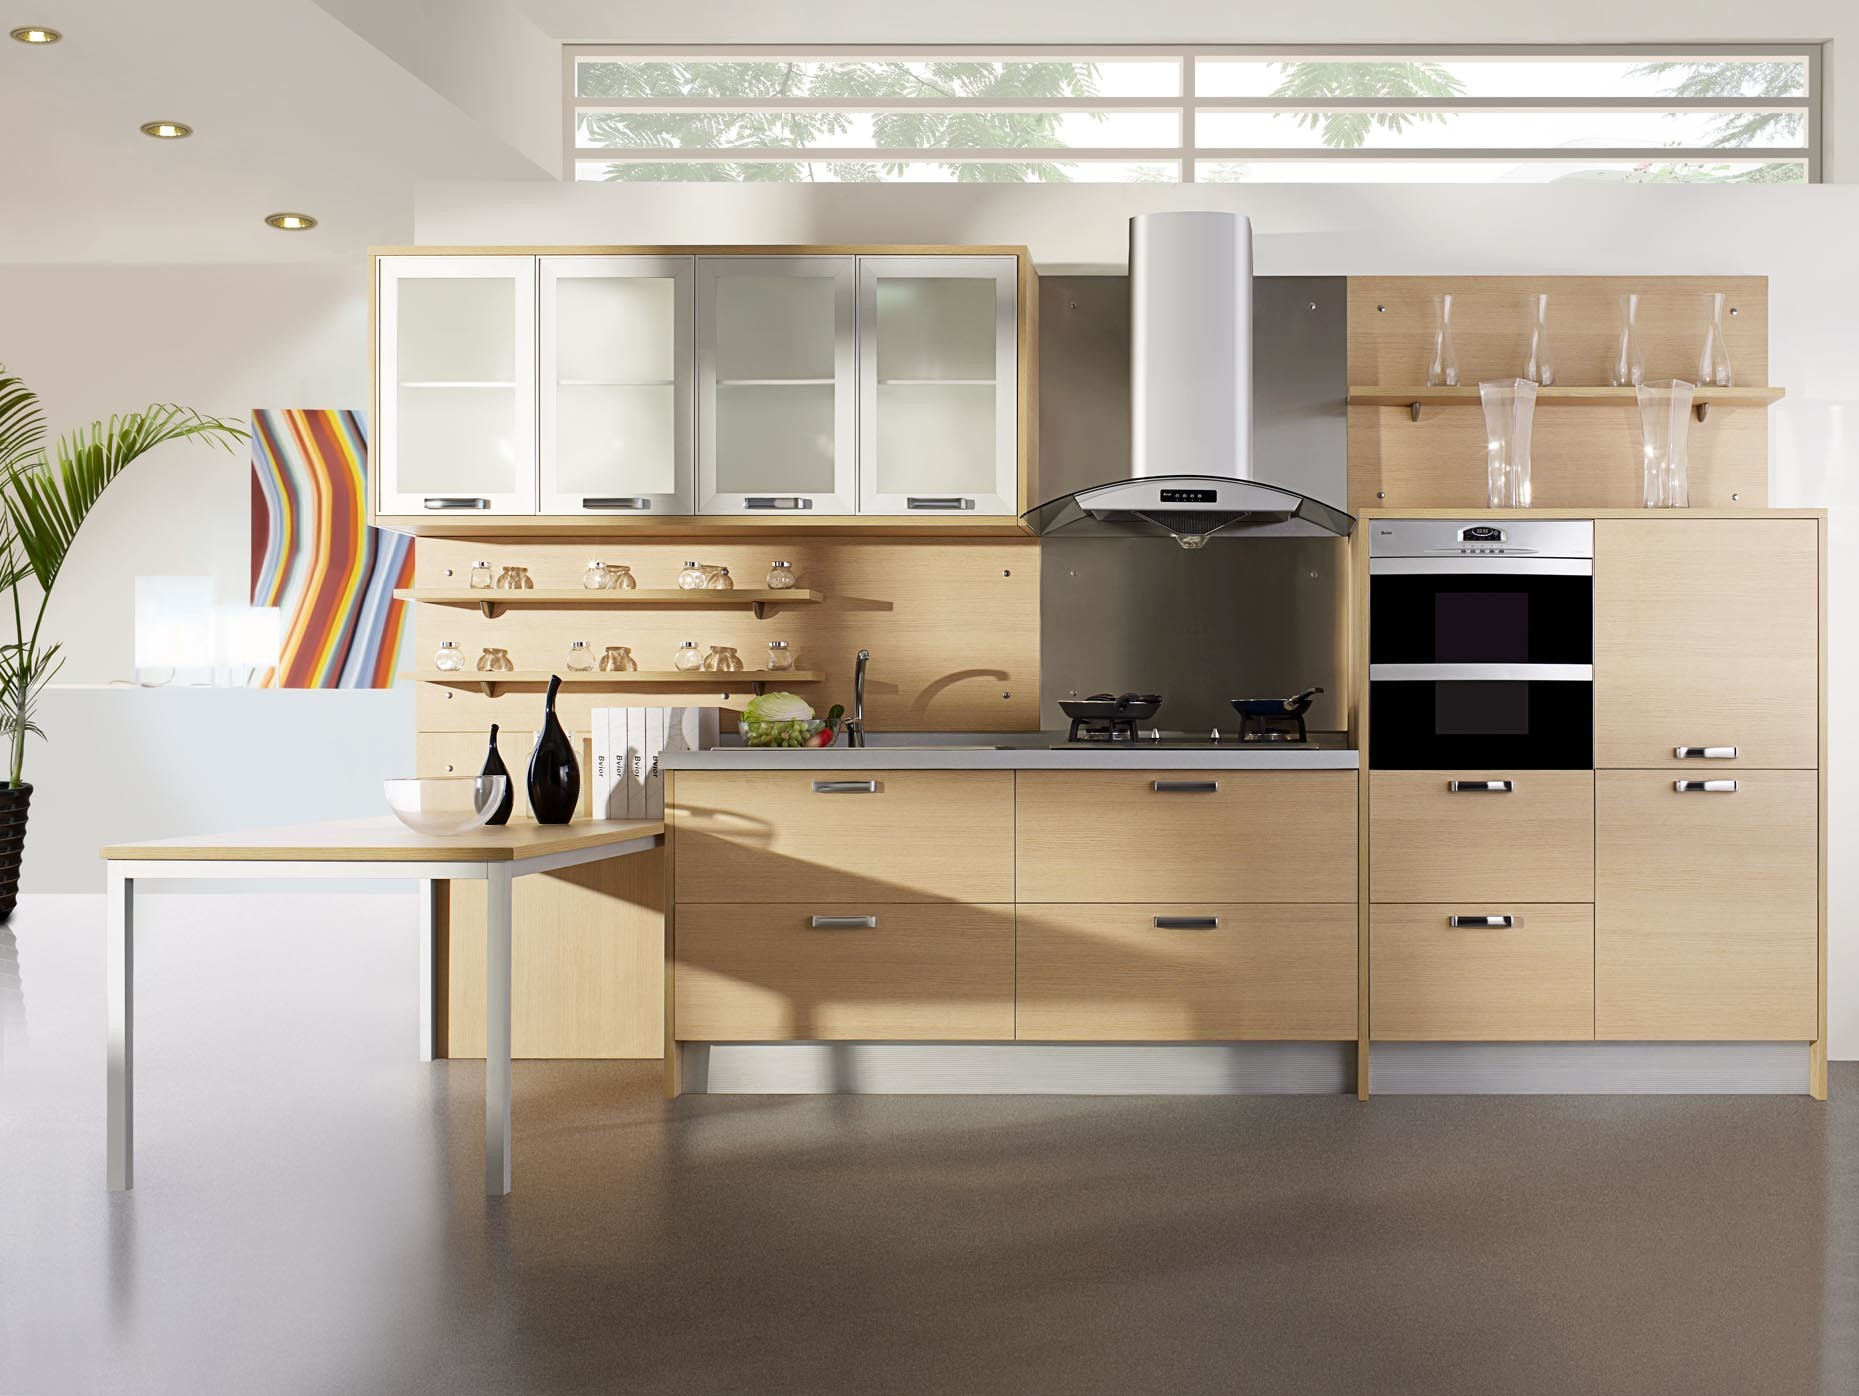 Costco - Kitchen and Bath Cabinets by All Wood Cabinetry®